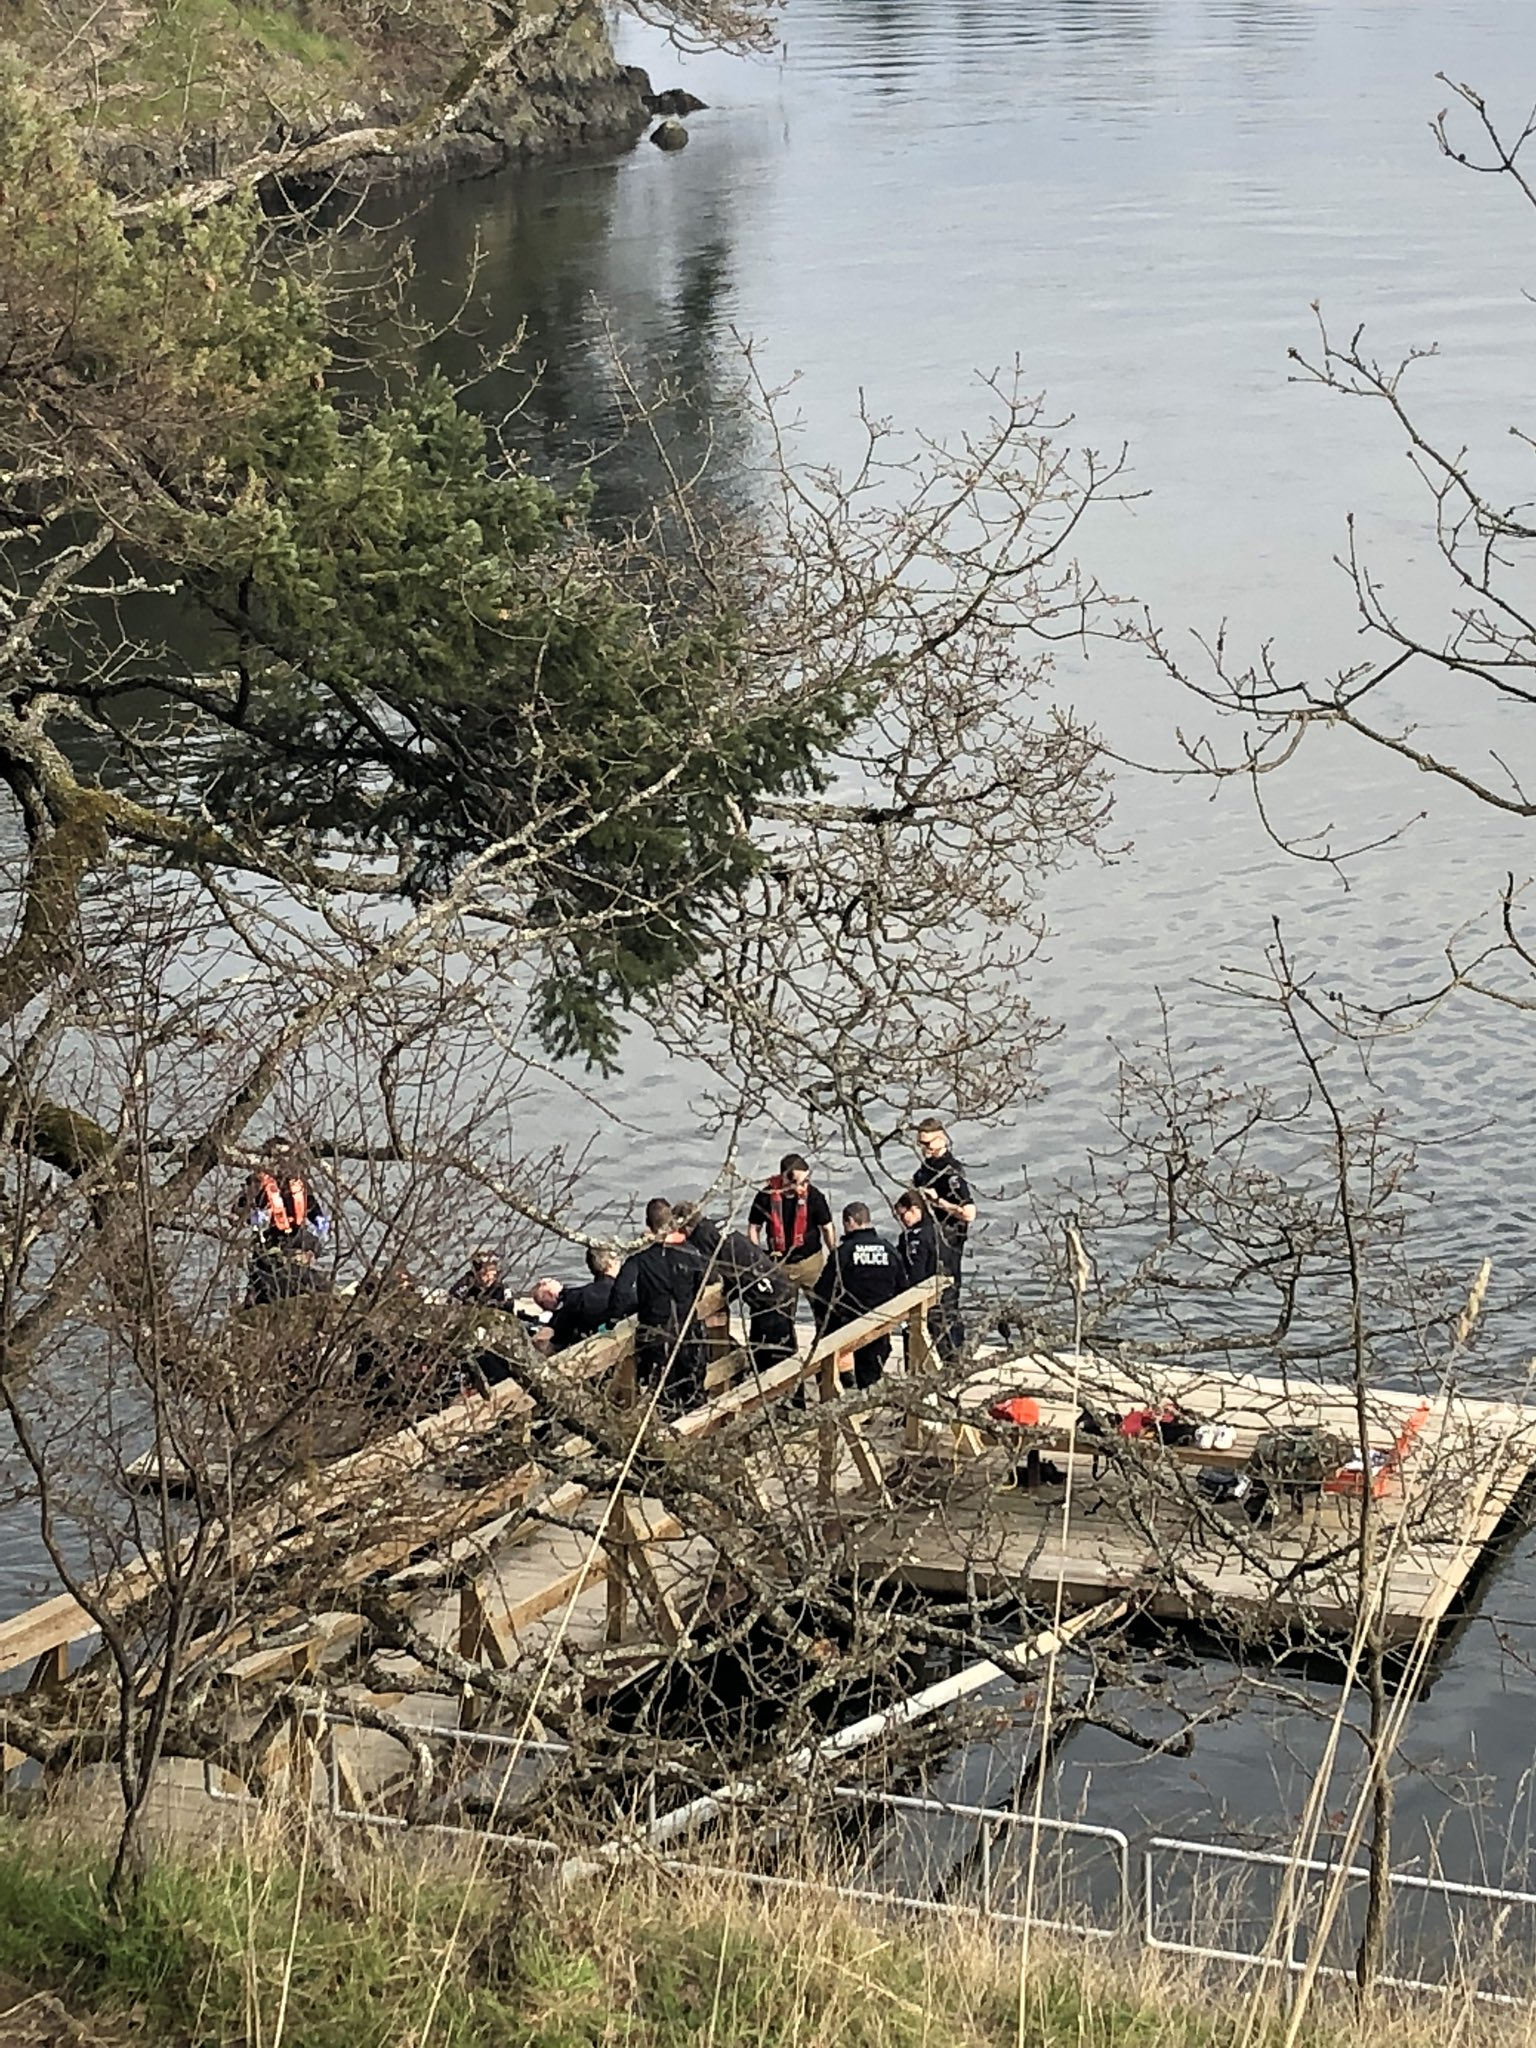 Gorge Bridge rescue operation